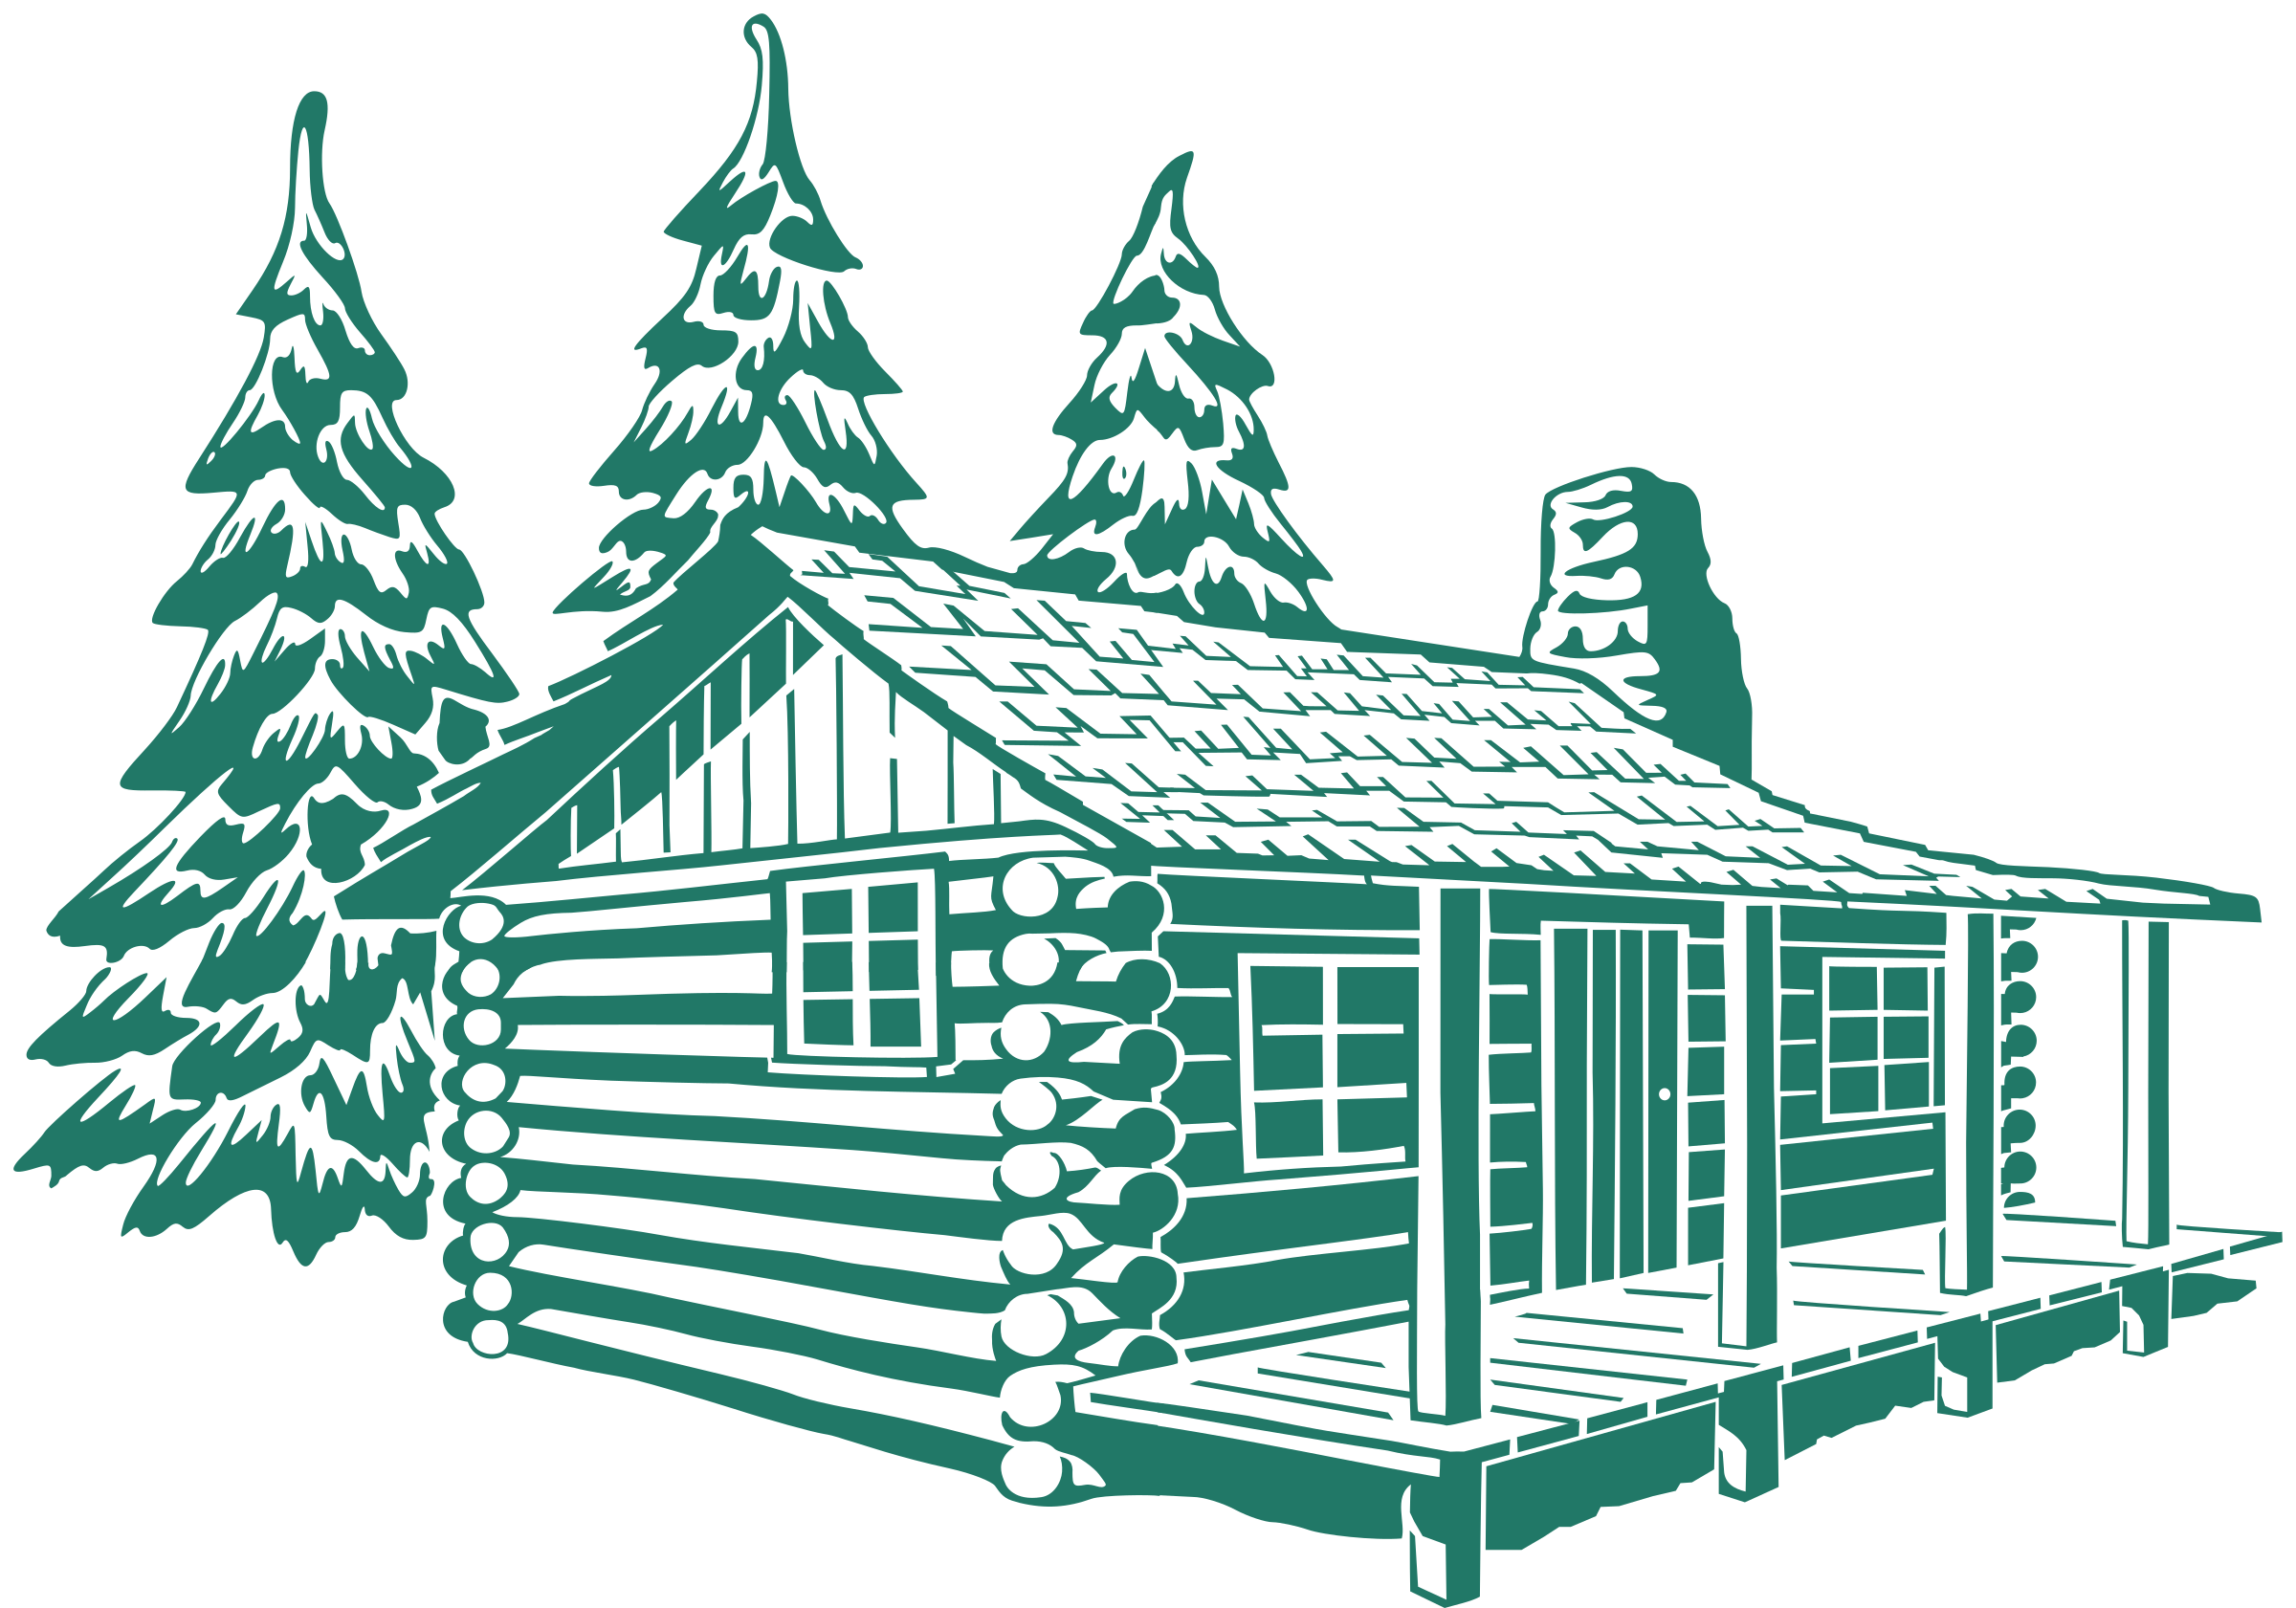 Big wooden house clipart jpg royalty free library Clipart - Cabin Hebrews 3 4 for plotter jpg royalty free library